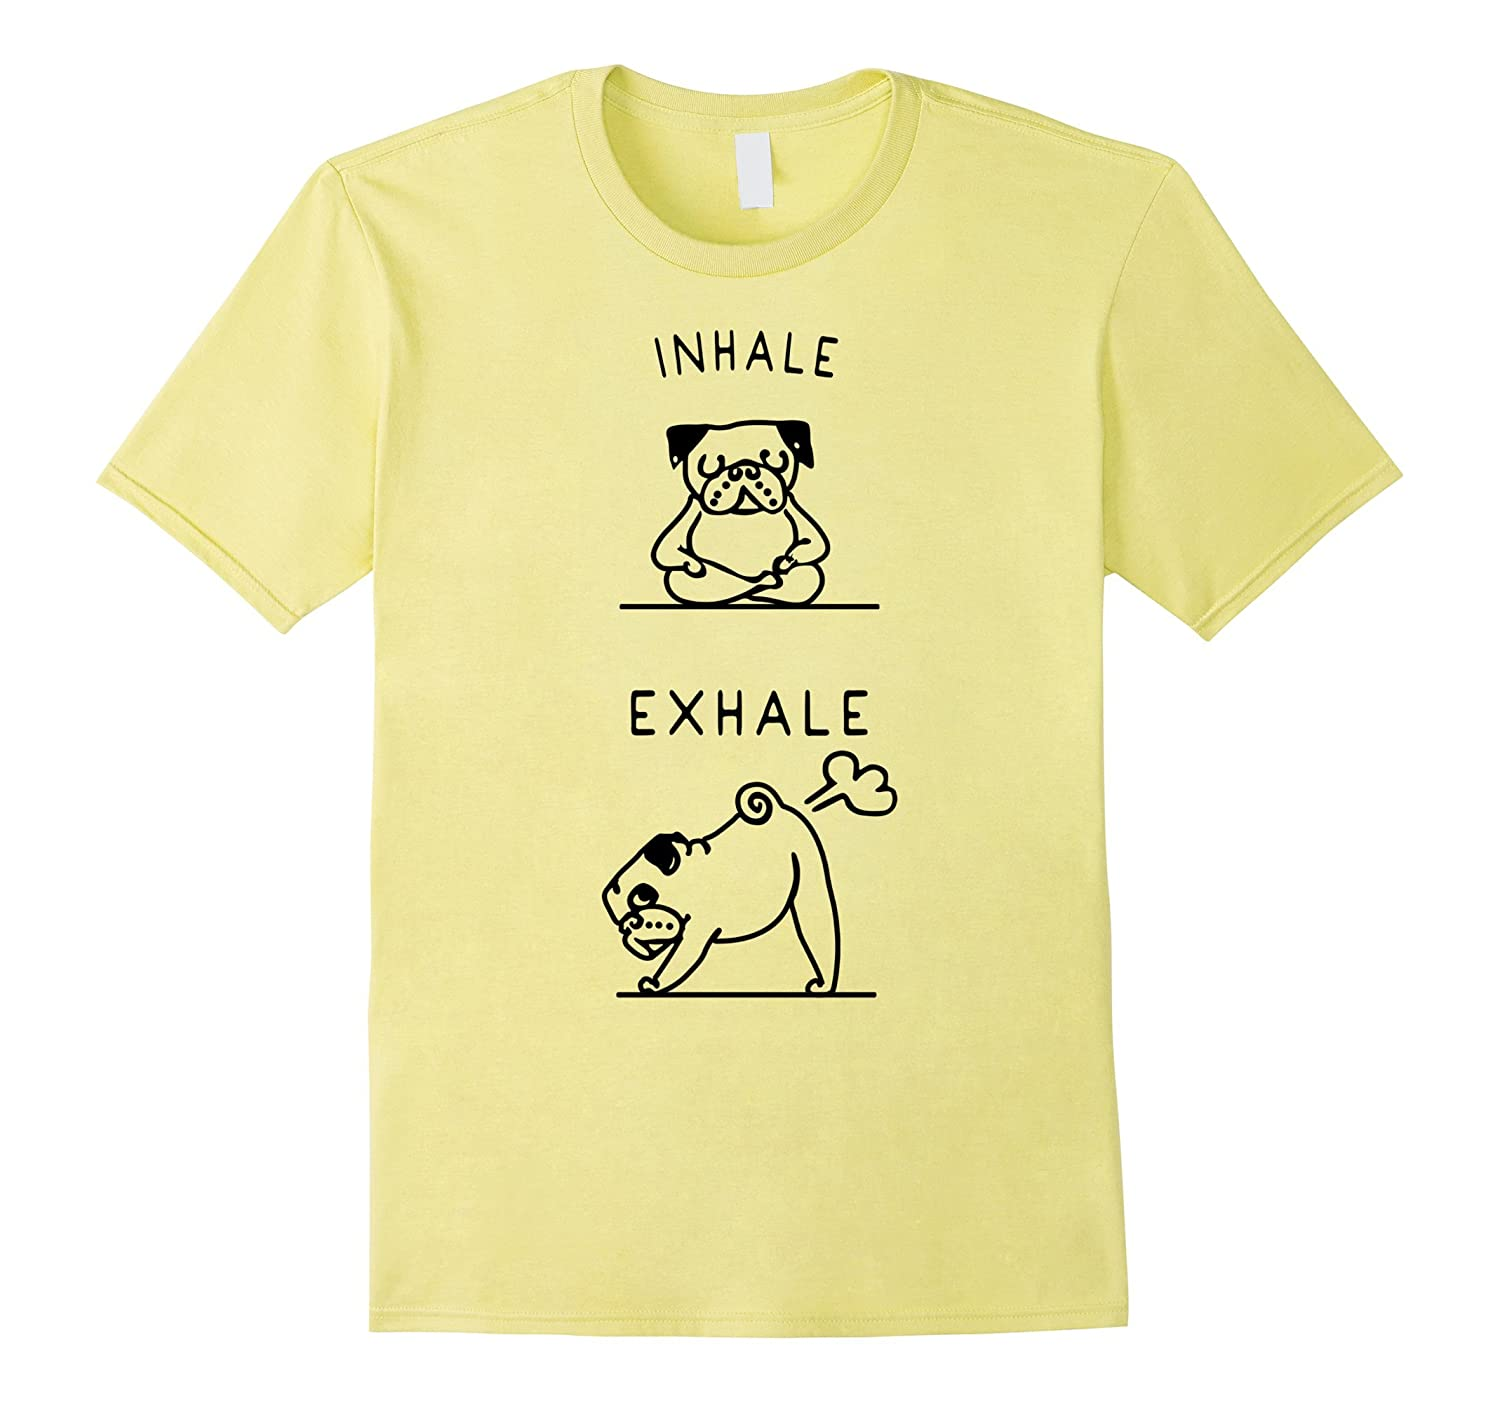 Love Pug Yoga Mediation Tshirt Inhale Exhale Cd Canditee Inhalation And Exhalation Diagram